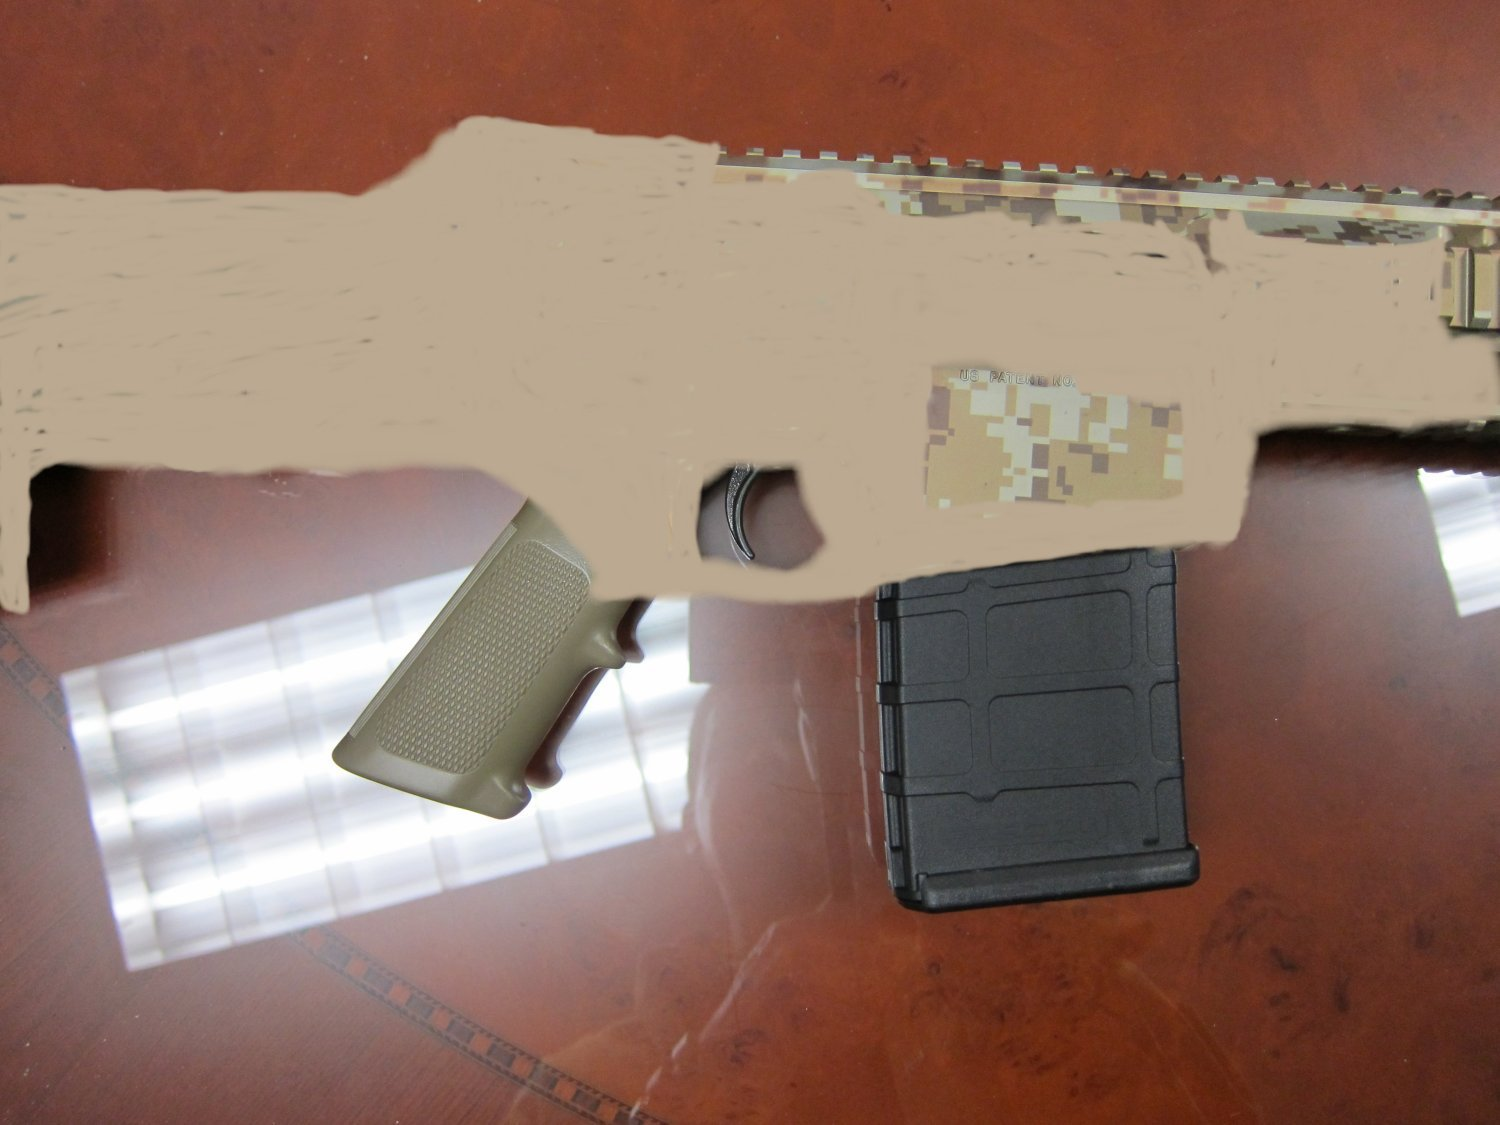 Colt CM901 Receivers and MagPul 7.62mm PMAG Sterilized 2 <!  :en  >DR Exclusive: Colt CM901 7.62x51mm NATO (7.62mm NATO)/.308 Win. Modular Battle Carbine/Rifle Magazine Revealed in Pictures (Photos!): Is it the MagPul PMAG 20LR 7.62mm Magazine?  Read and See! <!  :  >